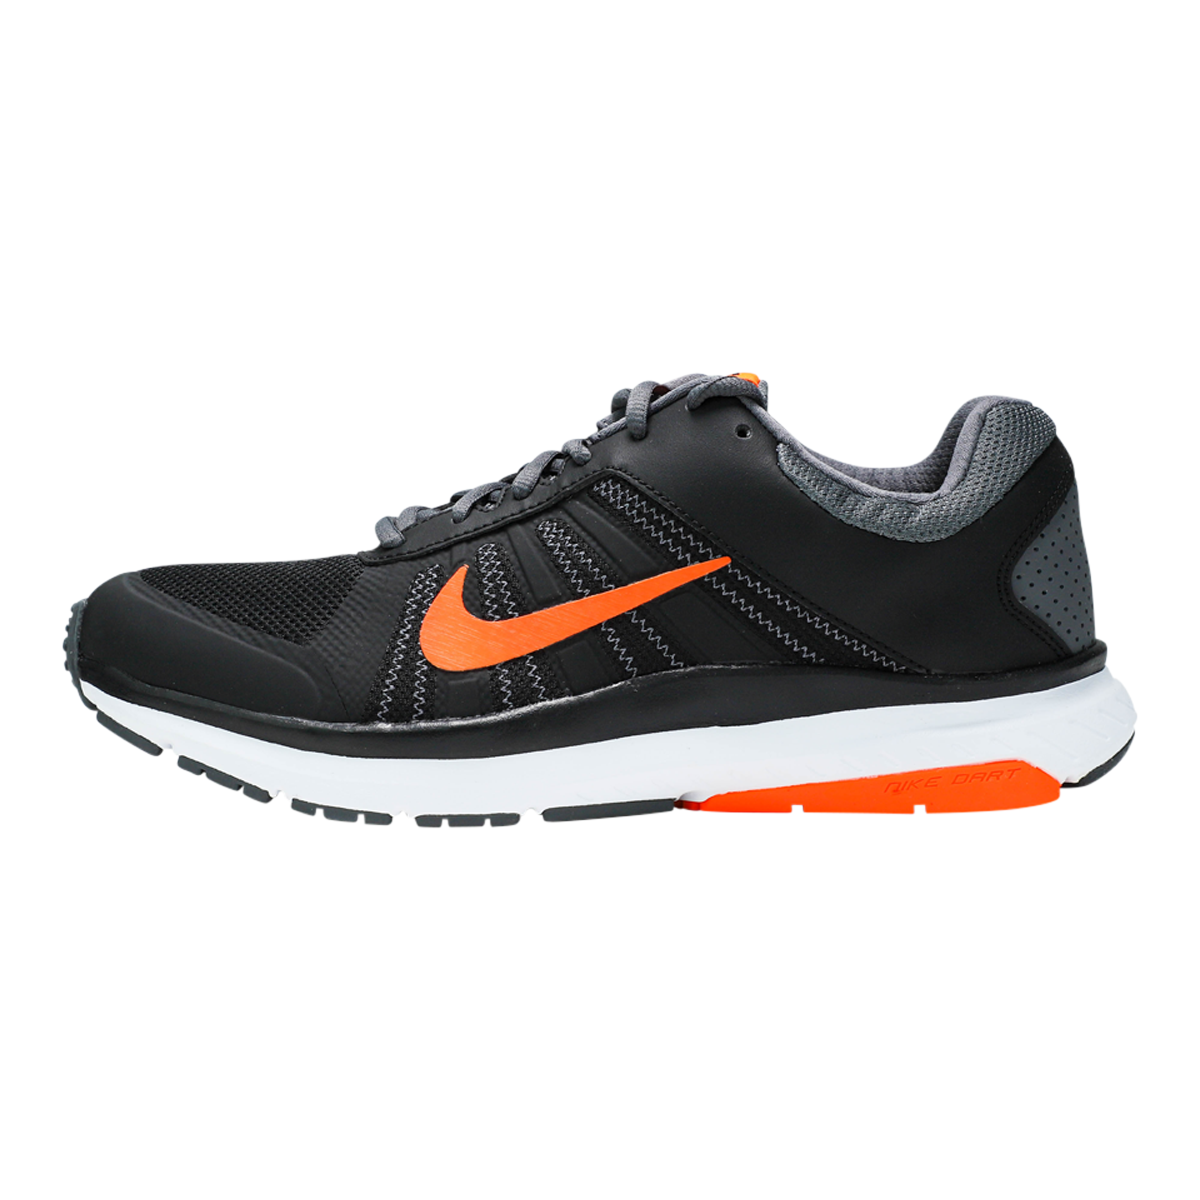 Nike-Men-039-s-Dart-12-MSL-Running-Shoes thumbnail 7